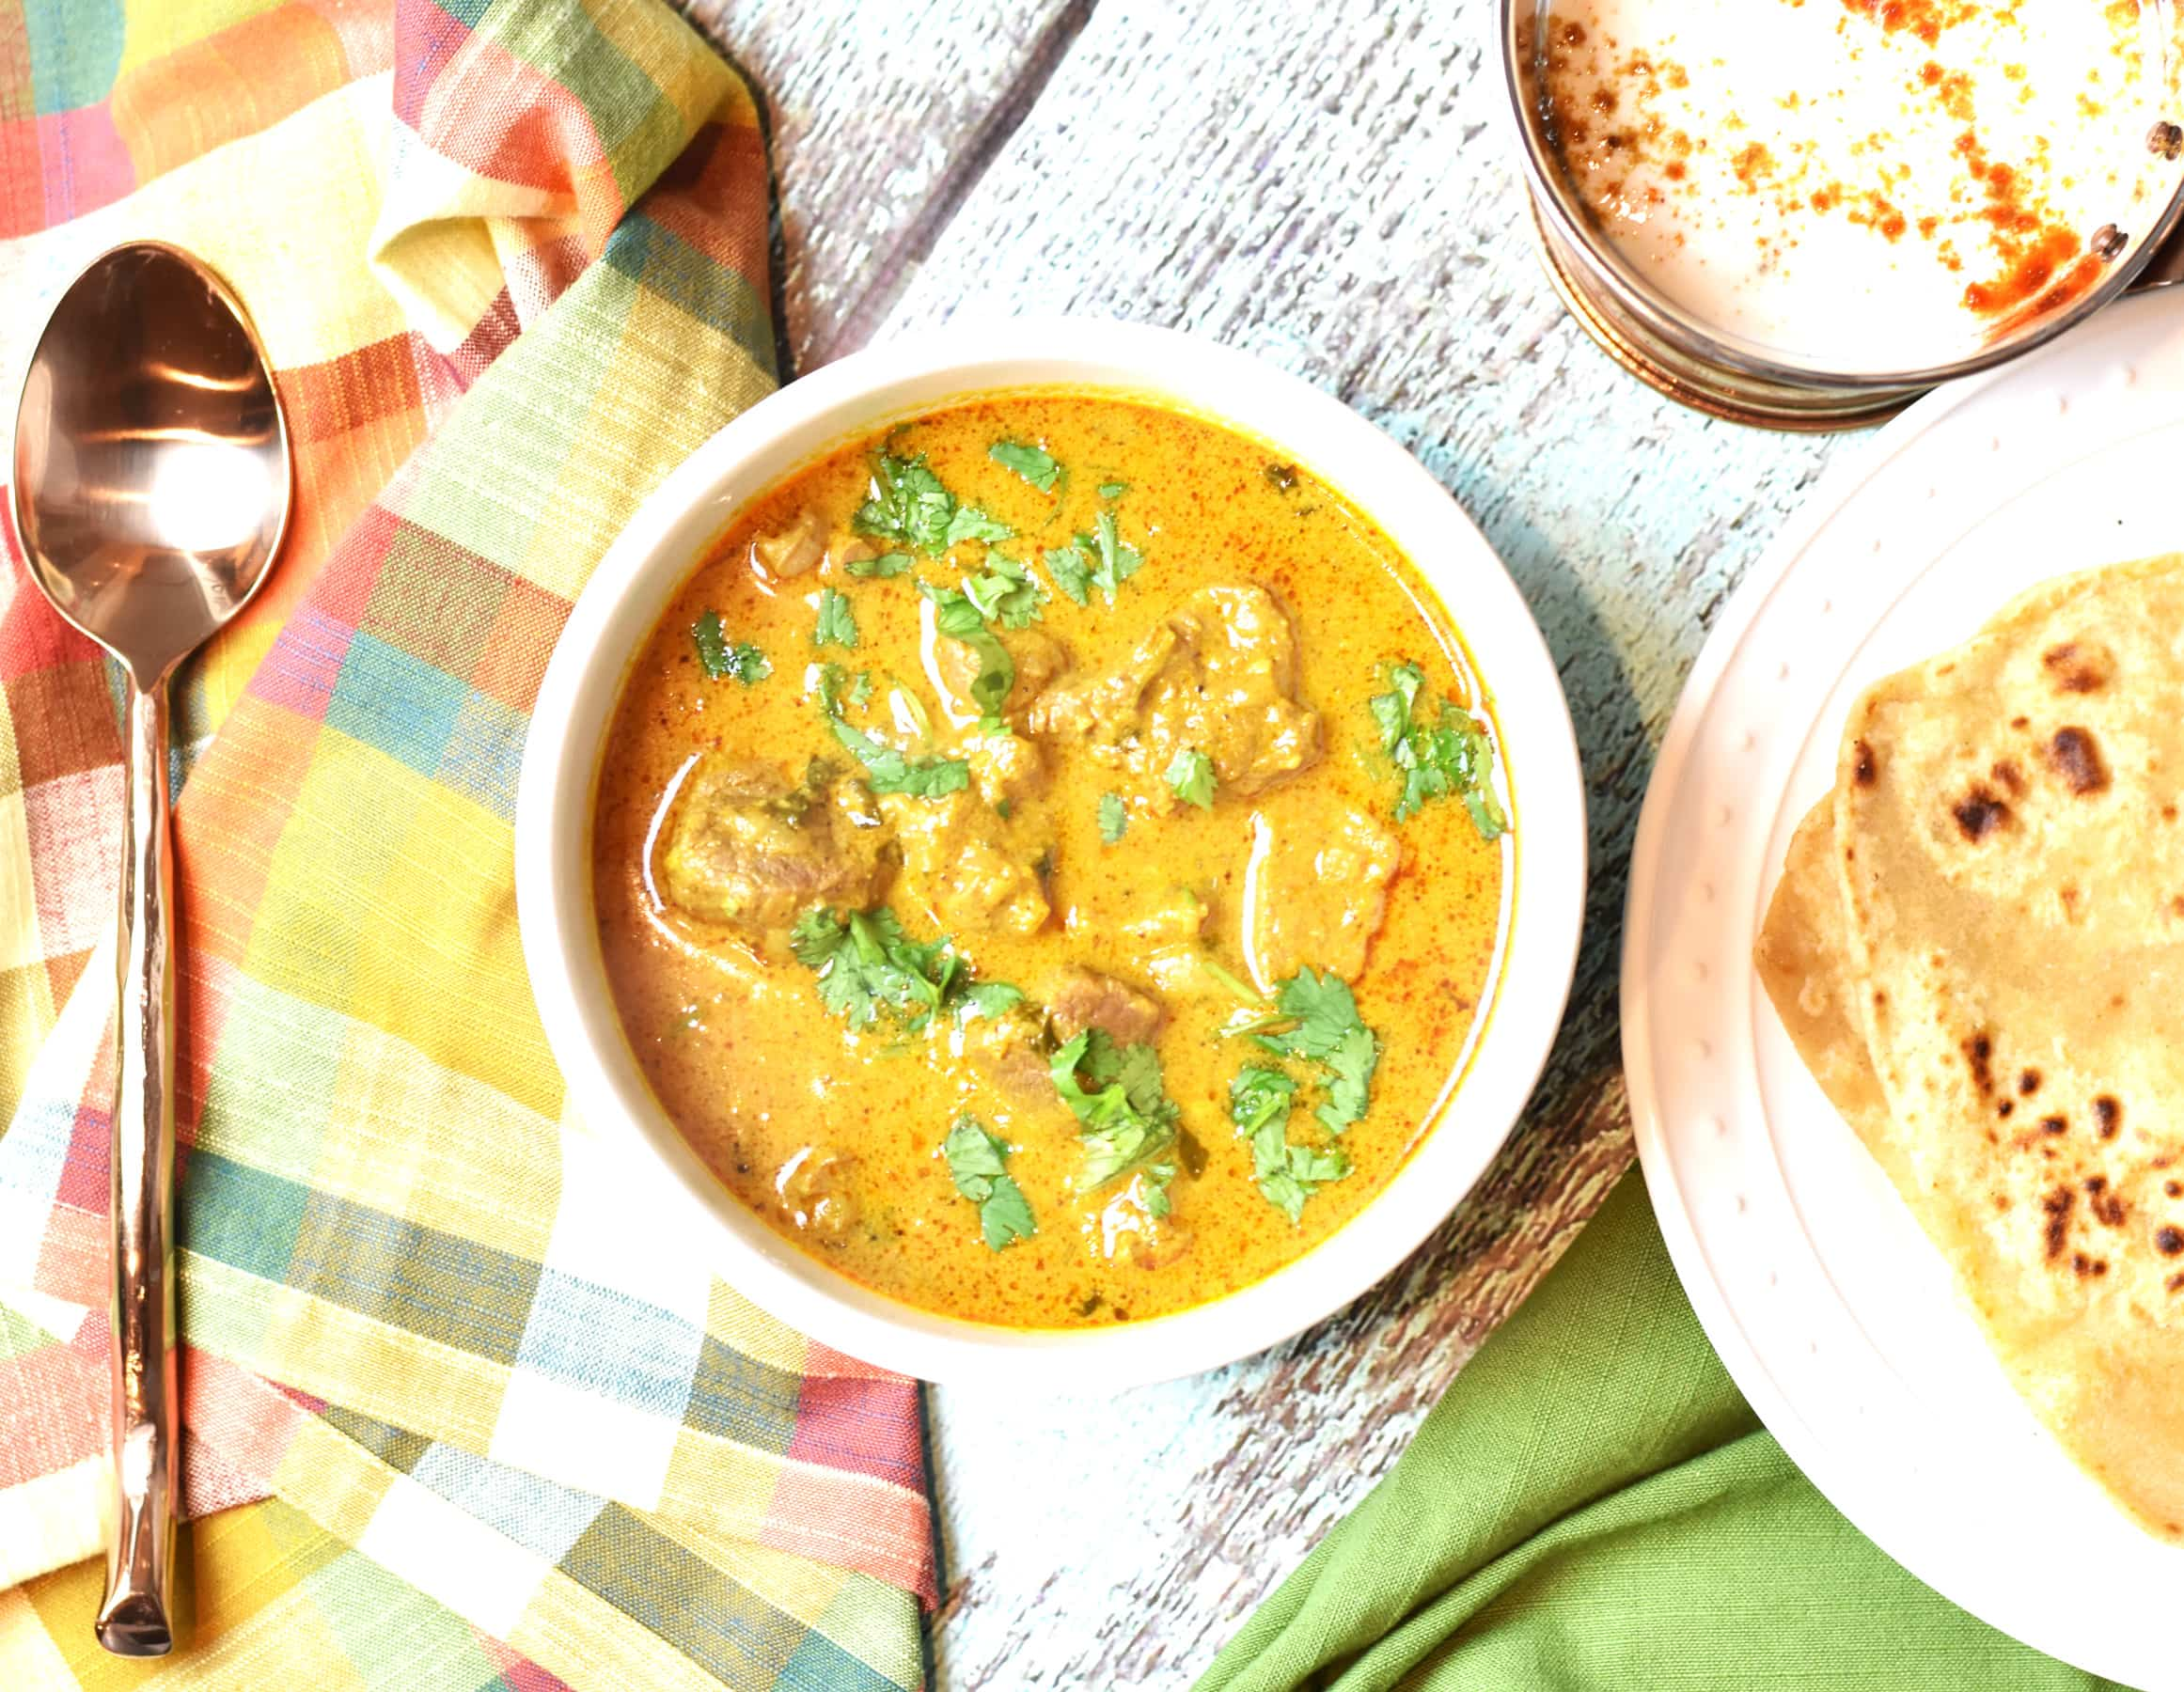 Lamb korma curry instant pot pressure cooker by Spice Cravings. Lamb Korma is an Indian Mughlai dish: Lamb stew meat is braised in a cream based sauce & bold Indian spices and simmered for hours to reach the perfection. #food #foodie #foodblogger #delicious #recipe #instantpot #recipes #easyrecipe #cuisine #30minutemeal #instagood #foodphotography #tasty #curry #indian